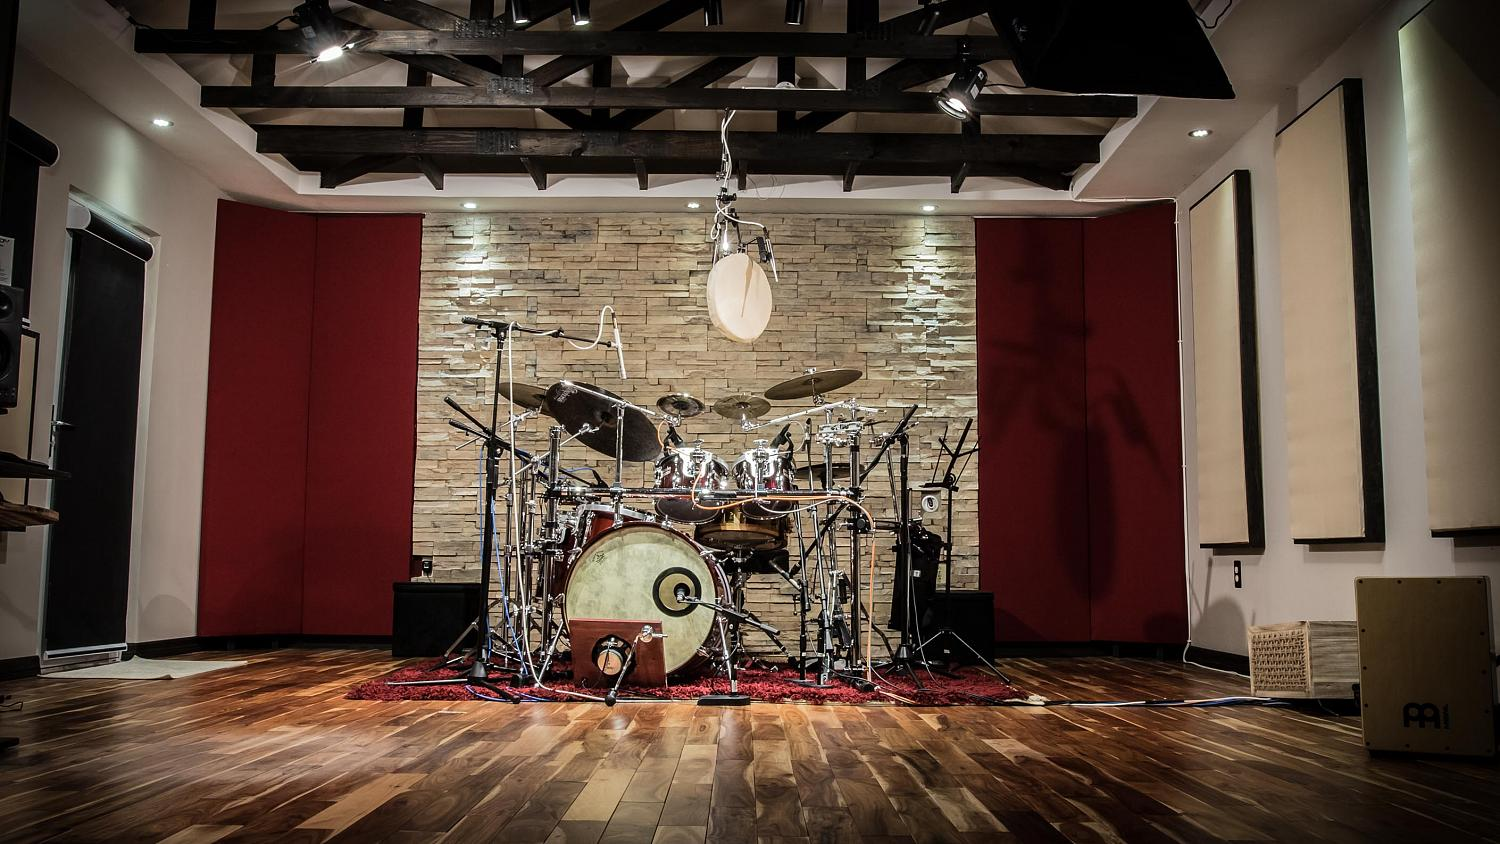 Drum recording studio, Grooves Recording Studio, where Goran Rista records and produces custom drum tracks